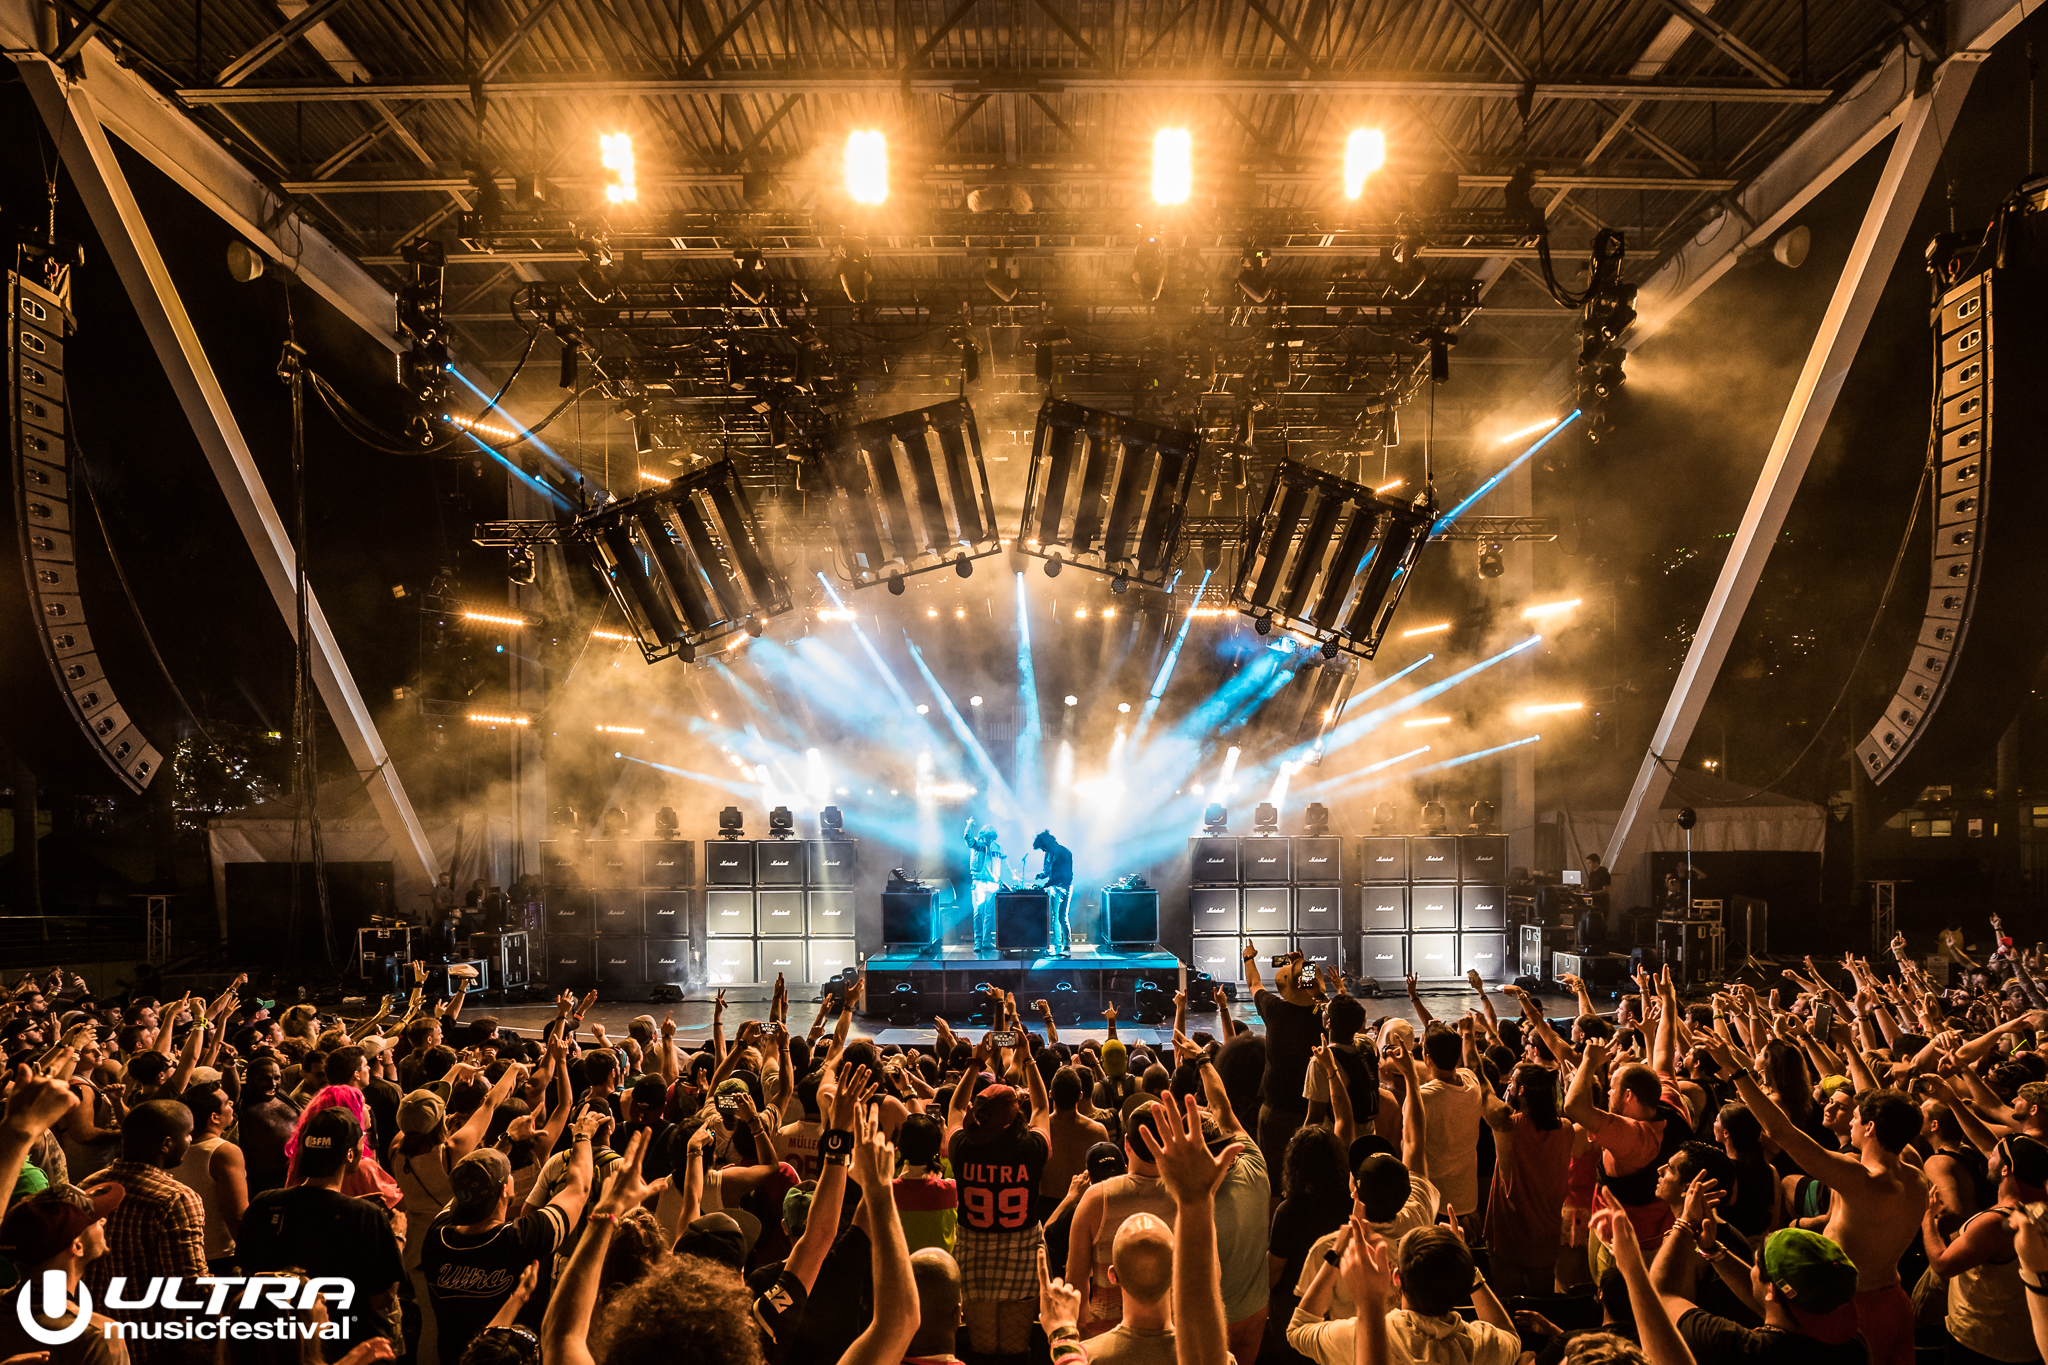 Ultra_2017_aLIVE Coverage - Live Stage